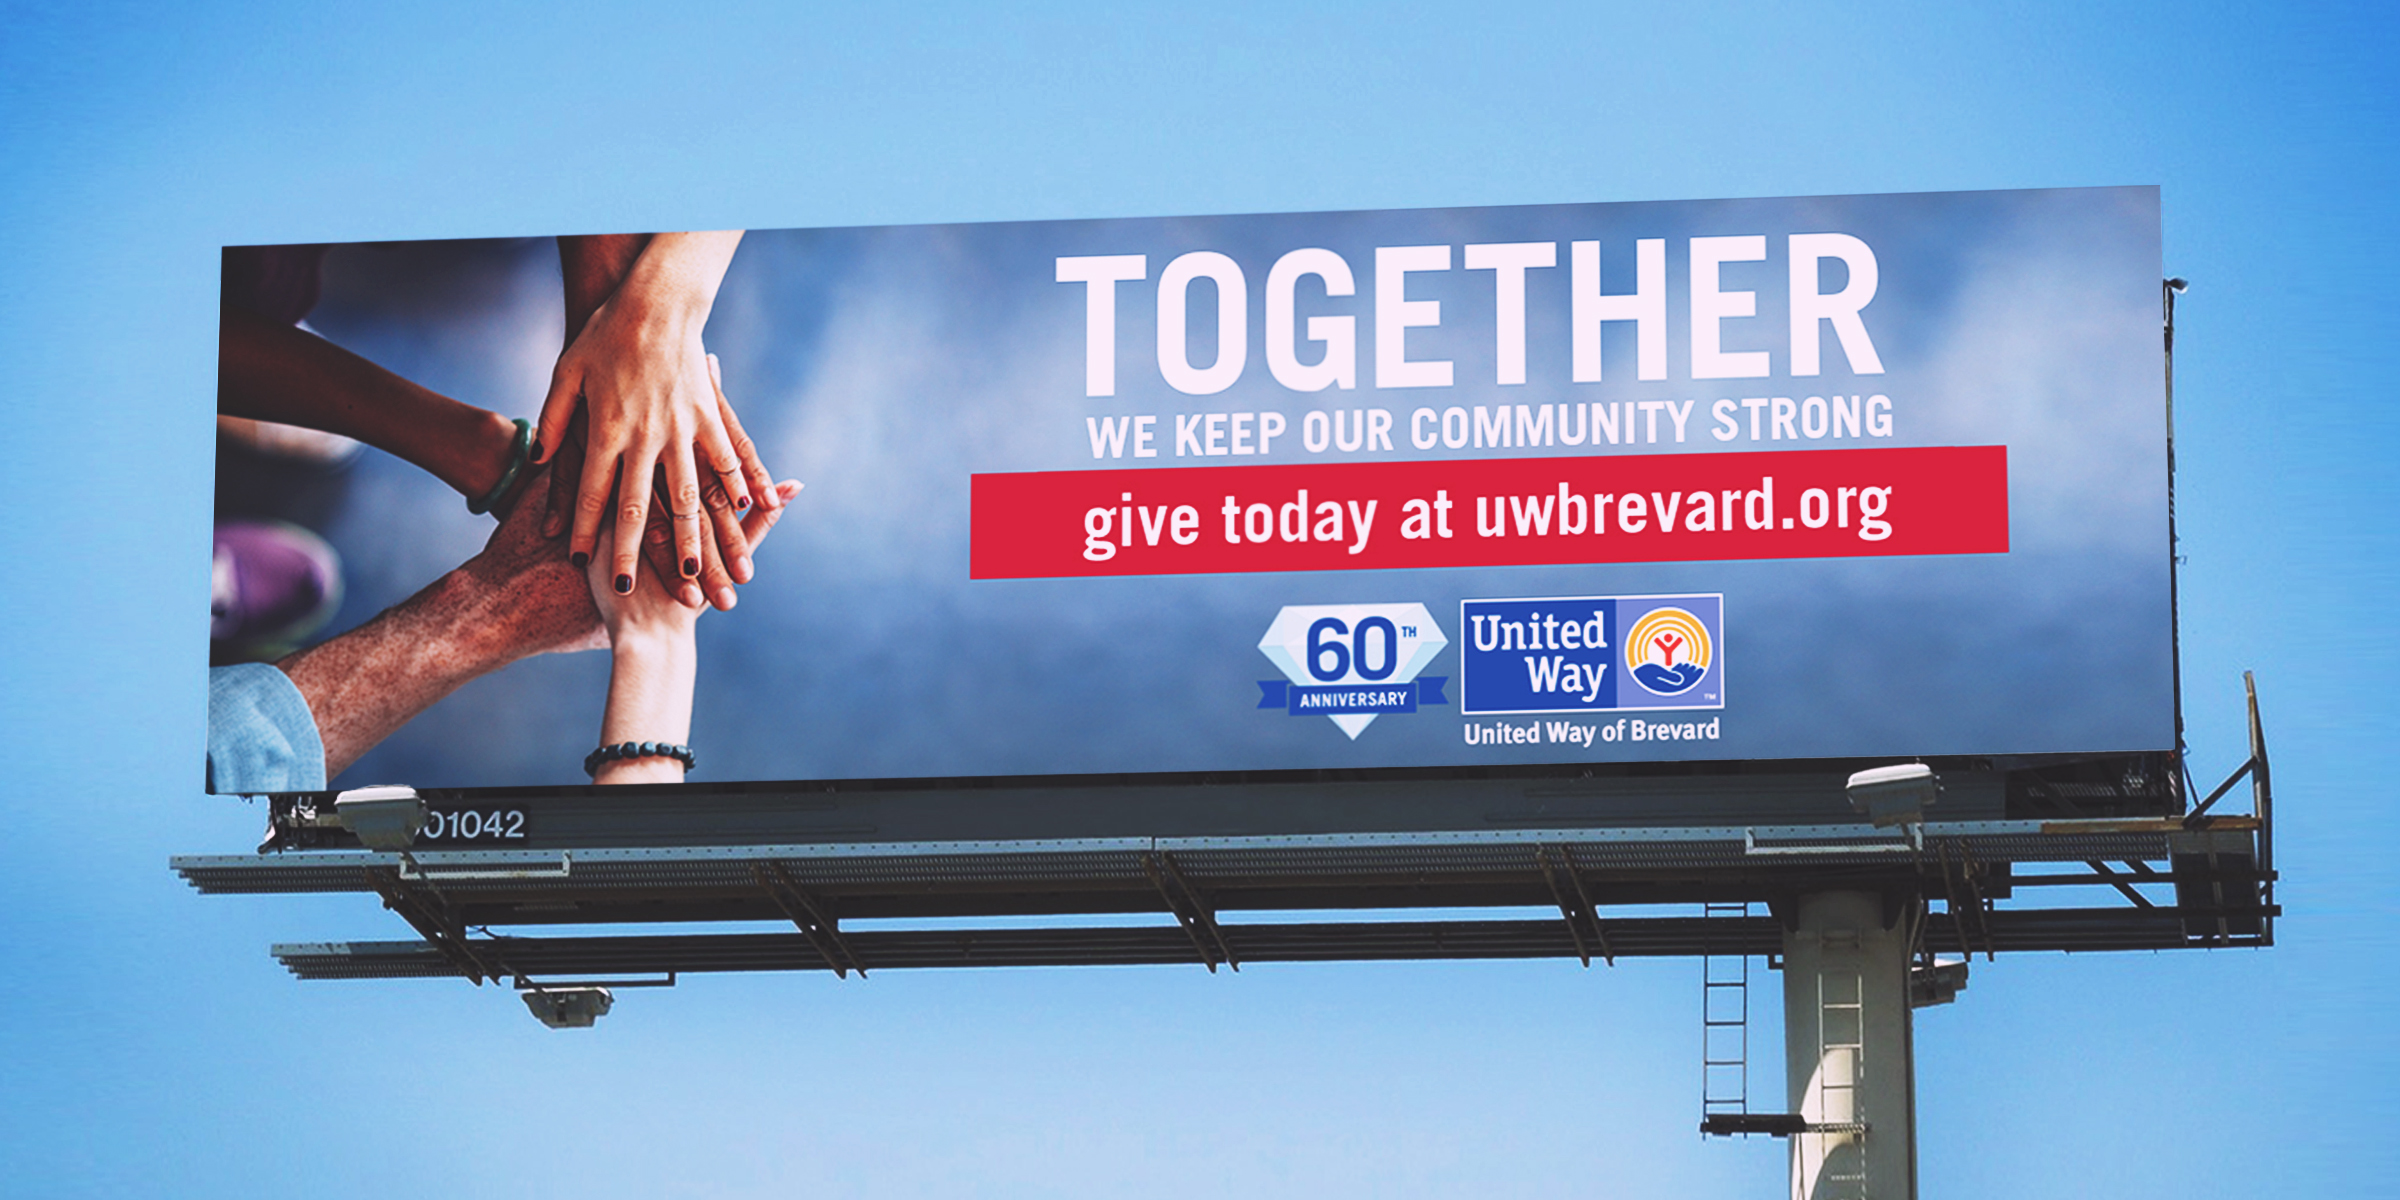 united way clearchannel billboard